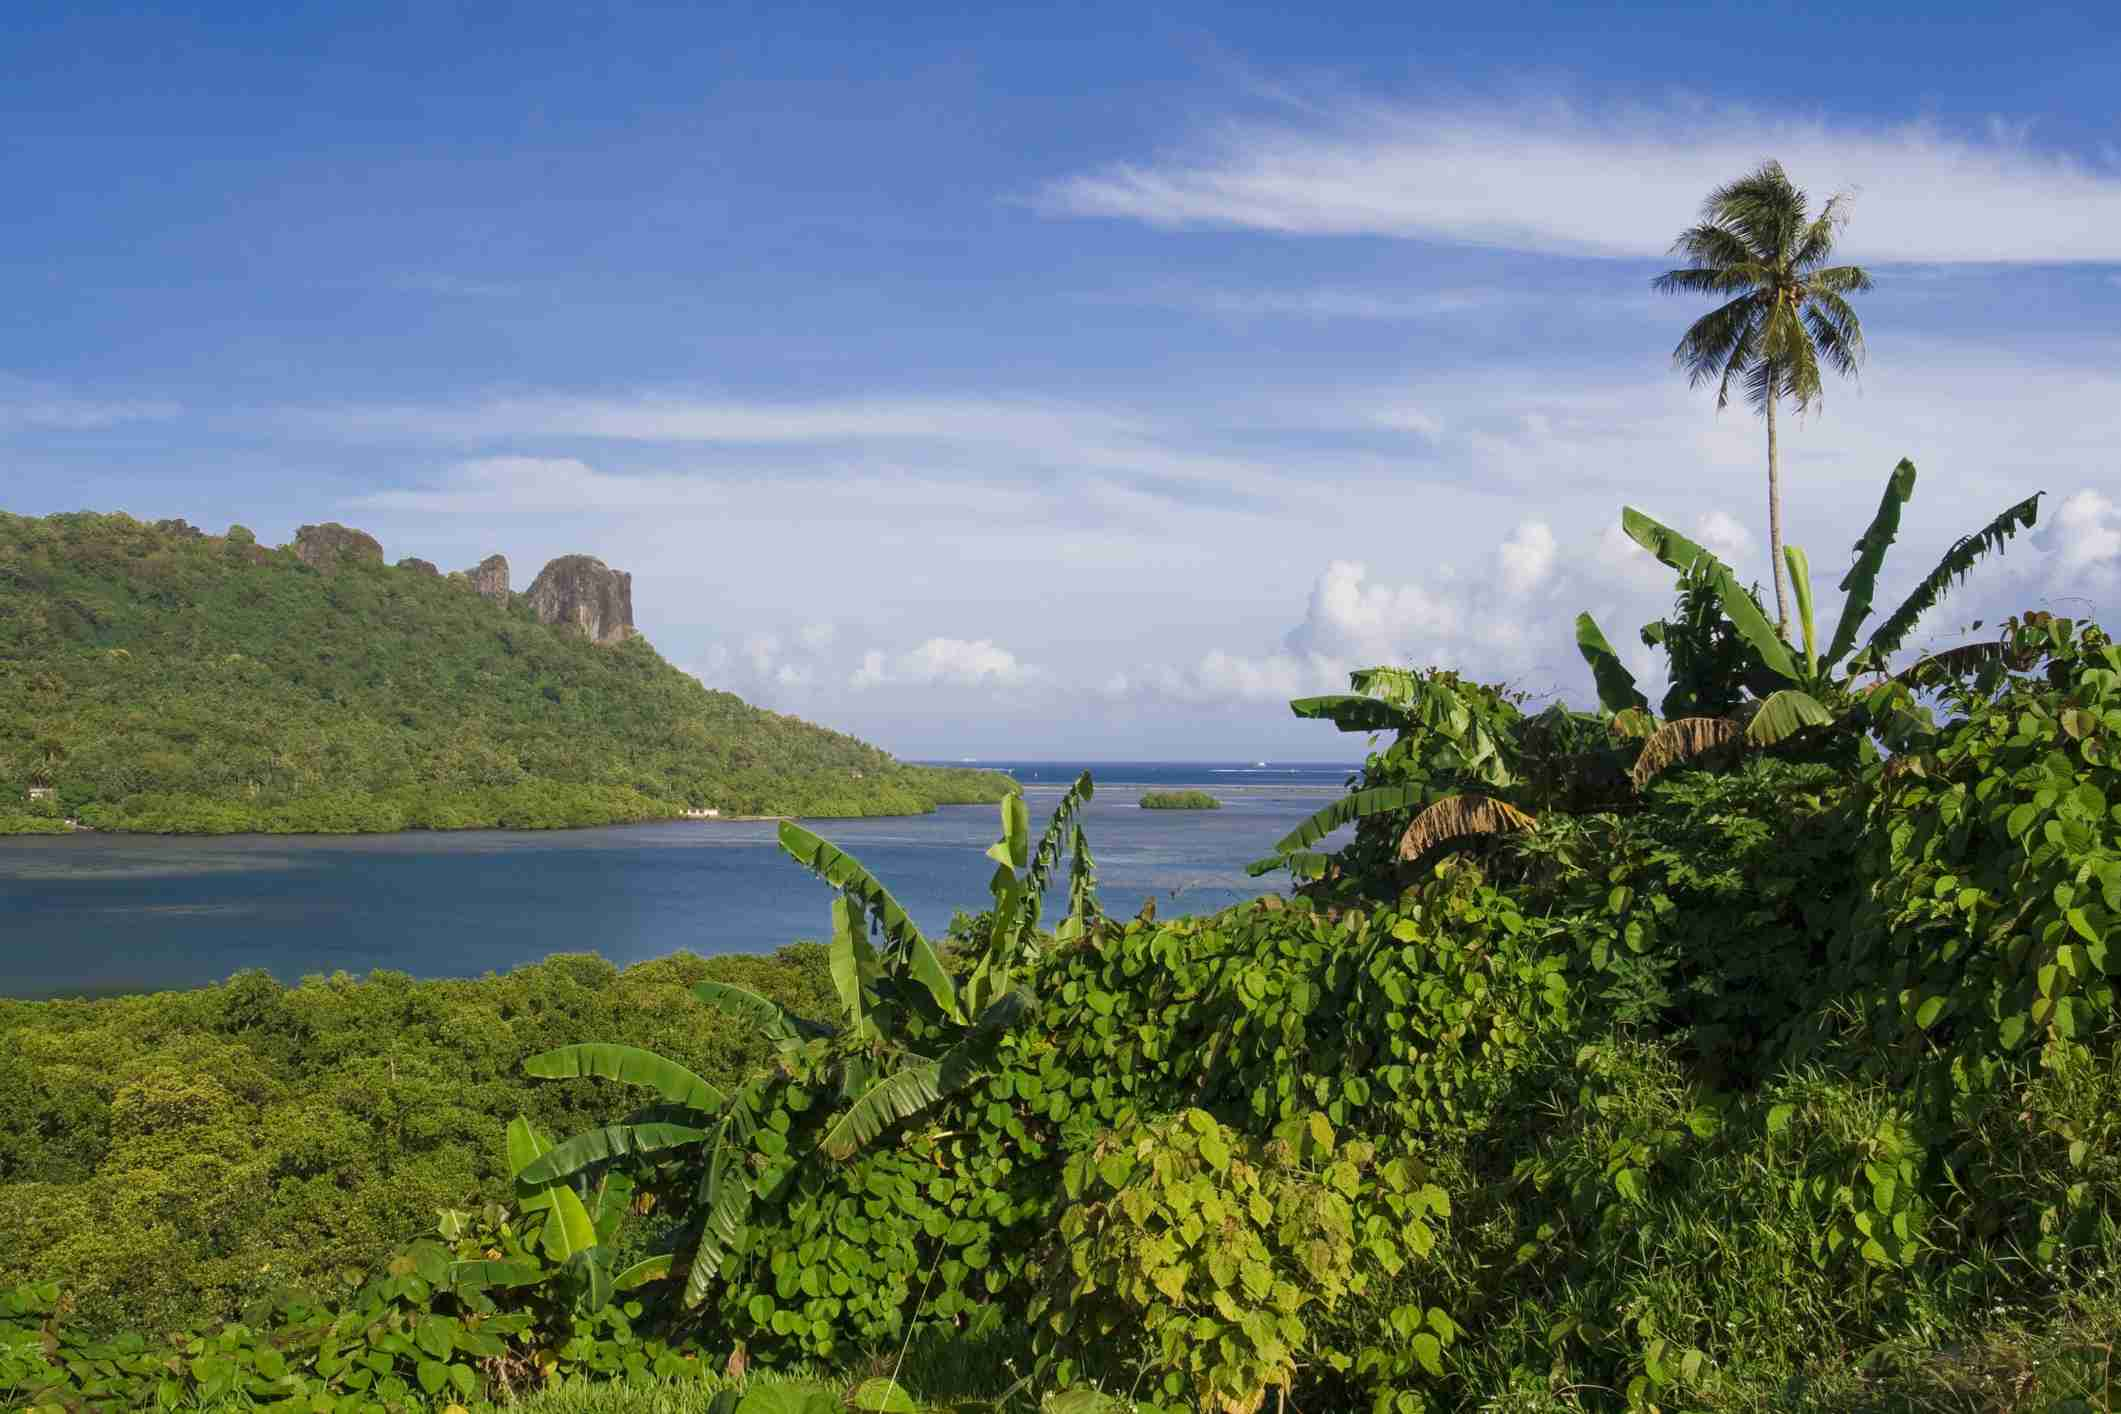 Panorama of the Sokhes Islands from Kolonia, Pohnpei, Federated States of Micronesia